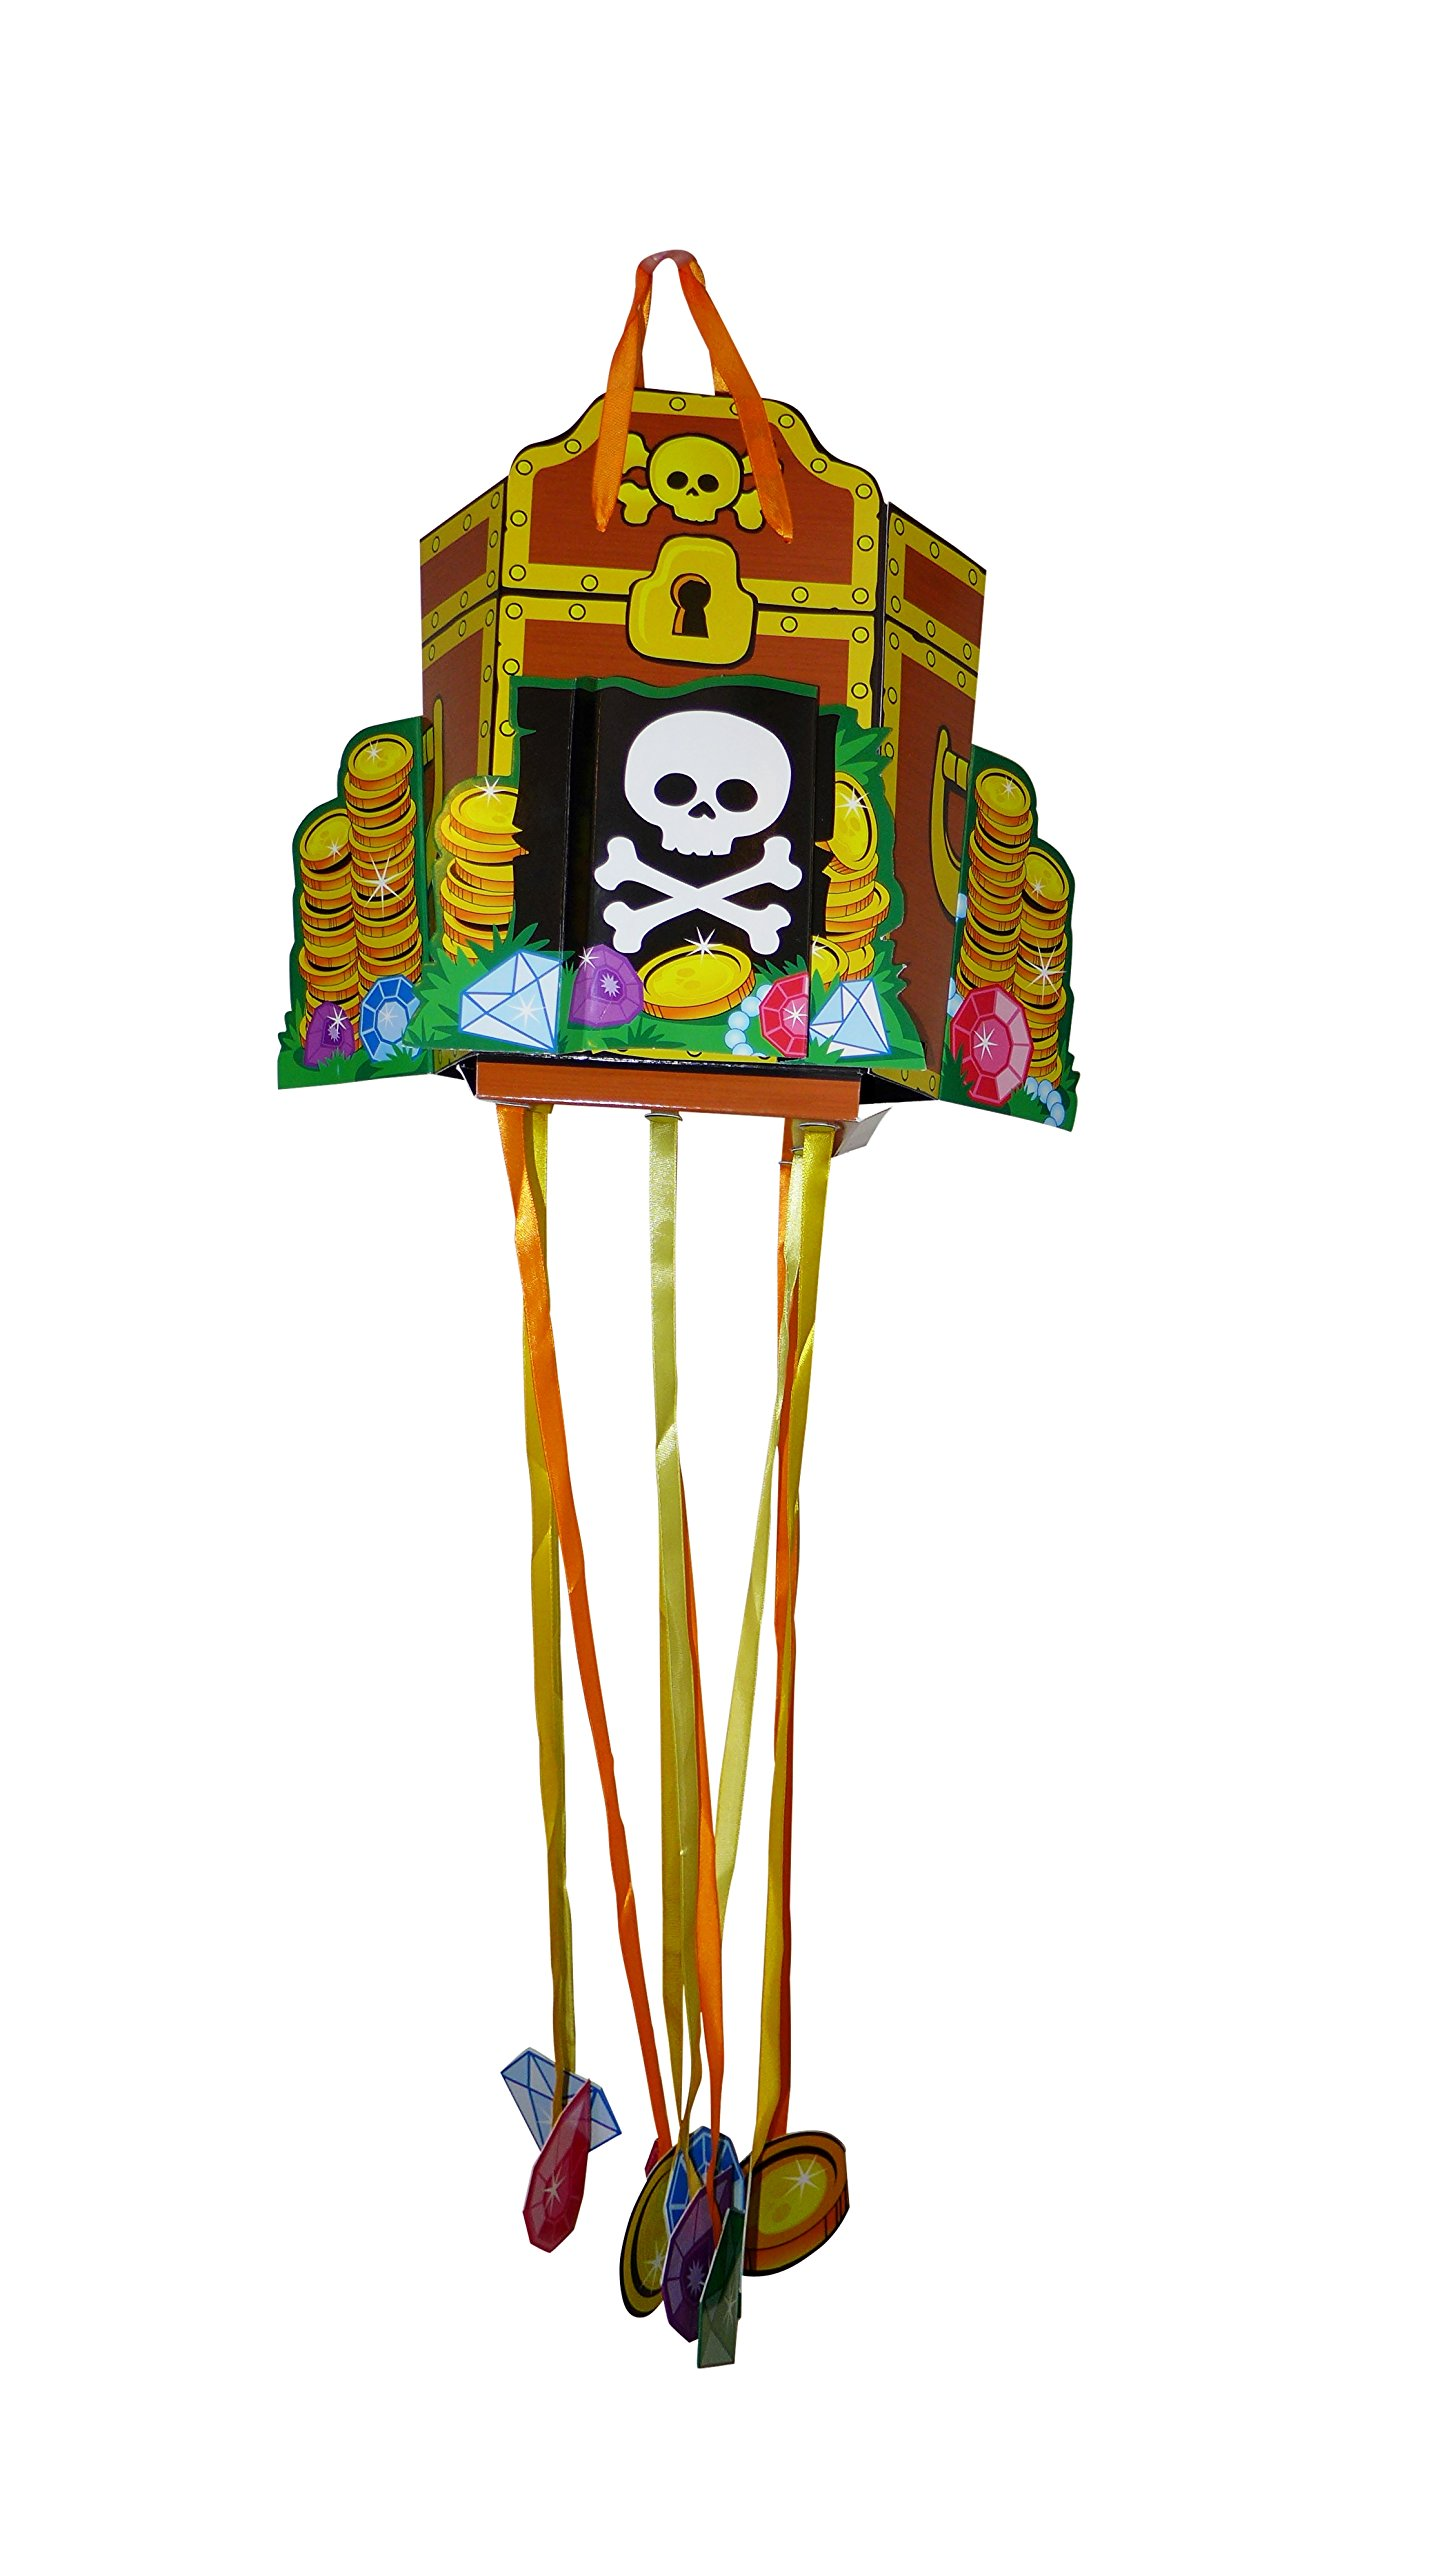 Cardstock Pirate Treasure Pinata (Size: 11.6'' x 9.6'' x 5.9'', Capacity: 2 Pounds Candy)   Perfect For Pirate Theme Party Supplies by J&J's ToyScape